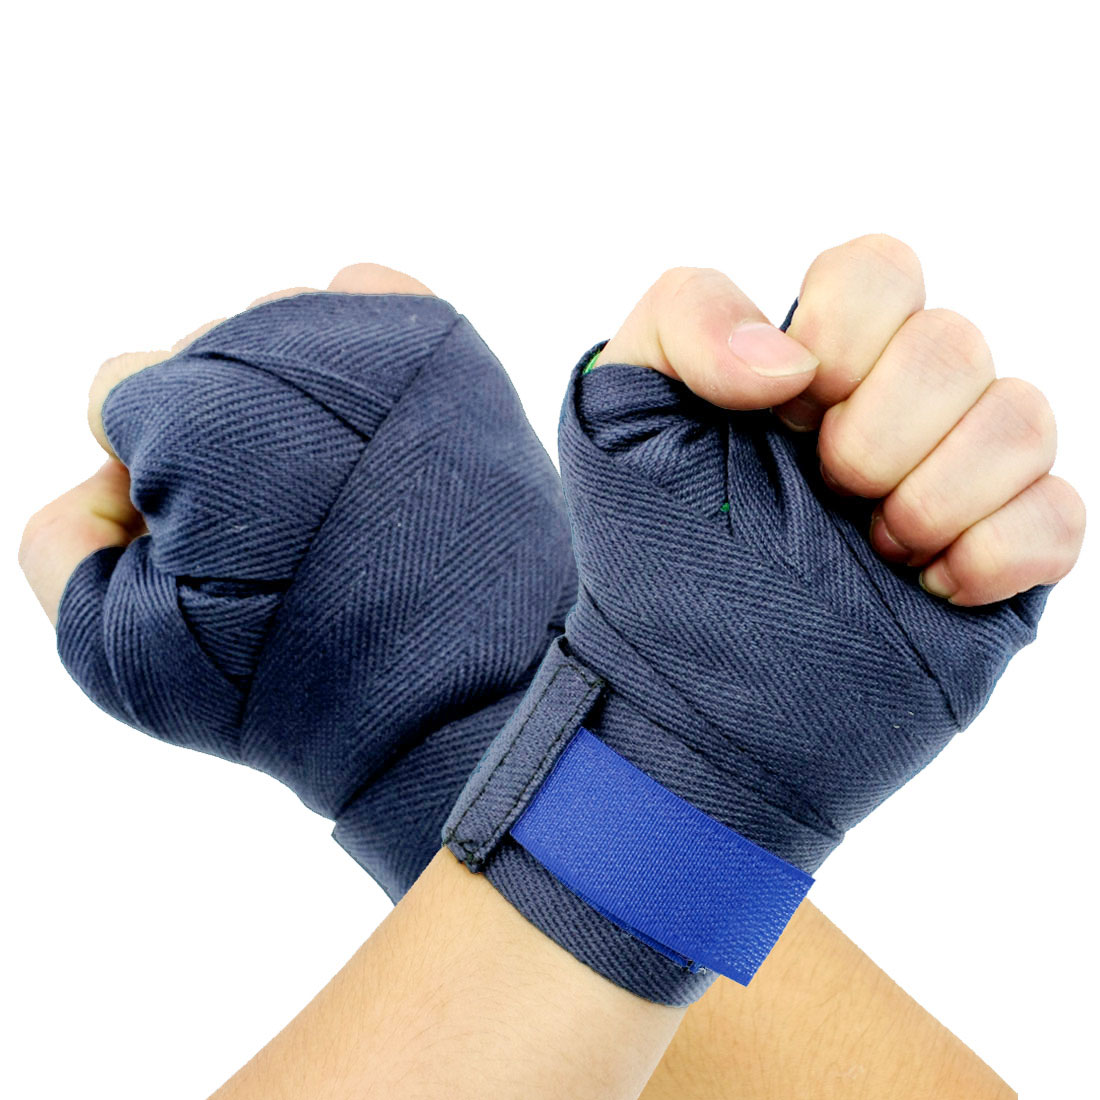 Hook Loop Closure Blue Boxing Hand Support Wraps Bandages Pair